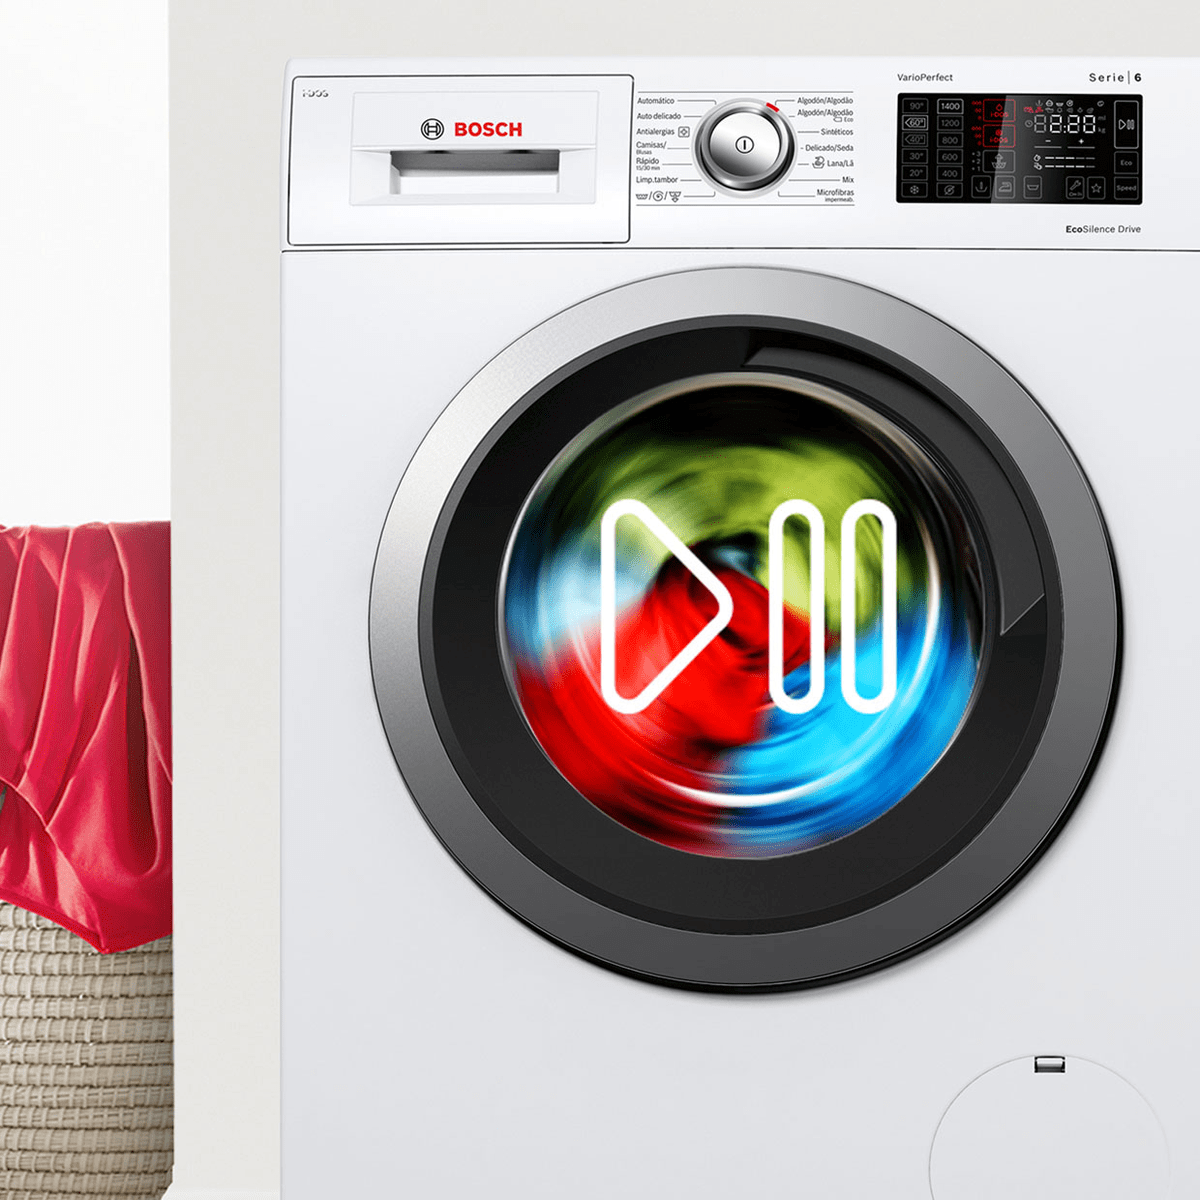 Bosch Reload Washing Machines | Add or Remove Clothes Mid Cycle